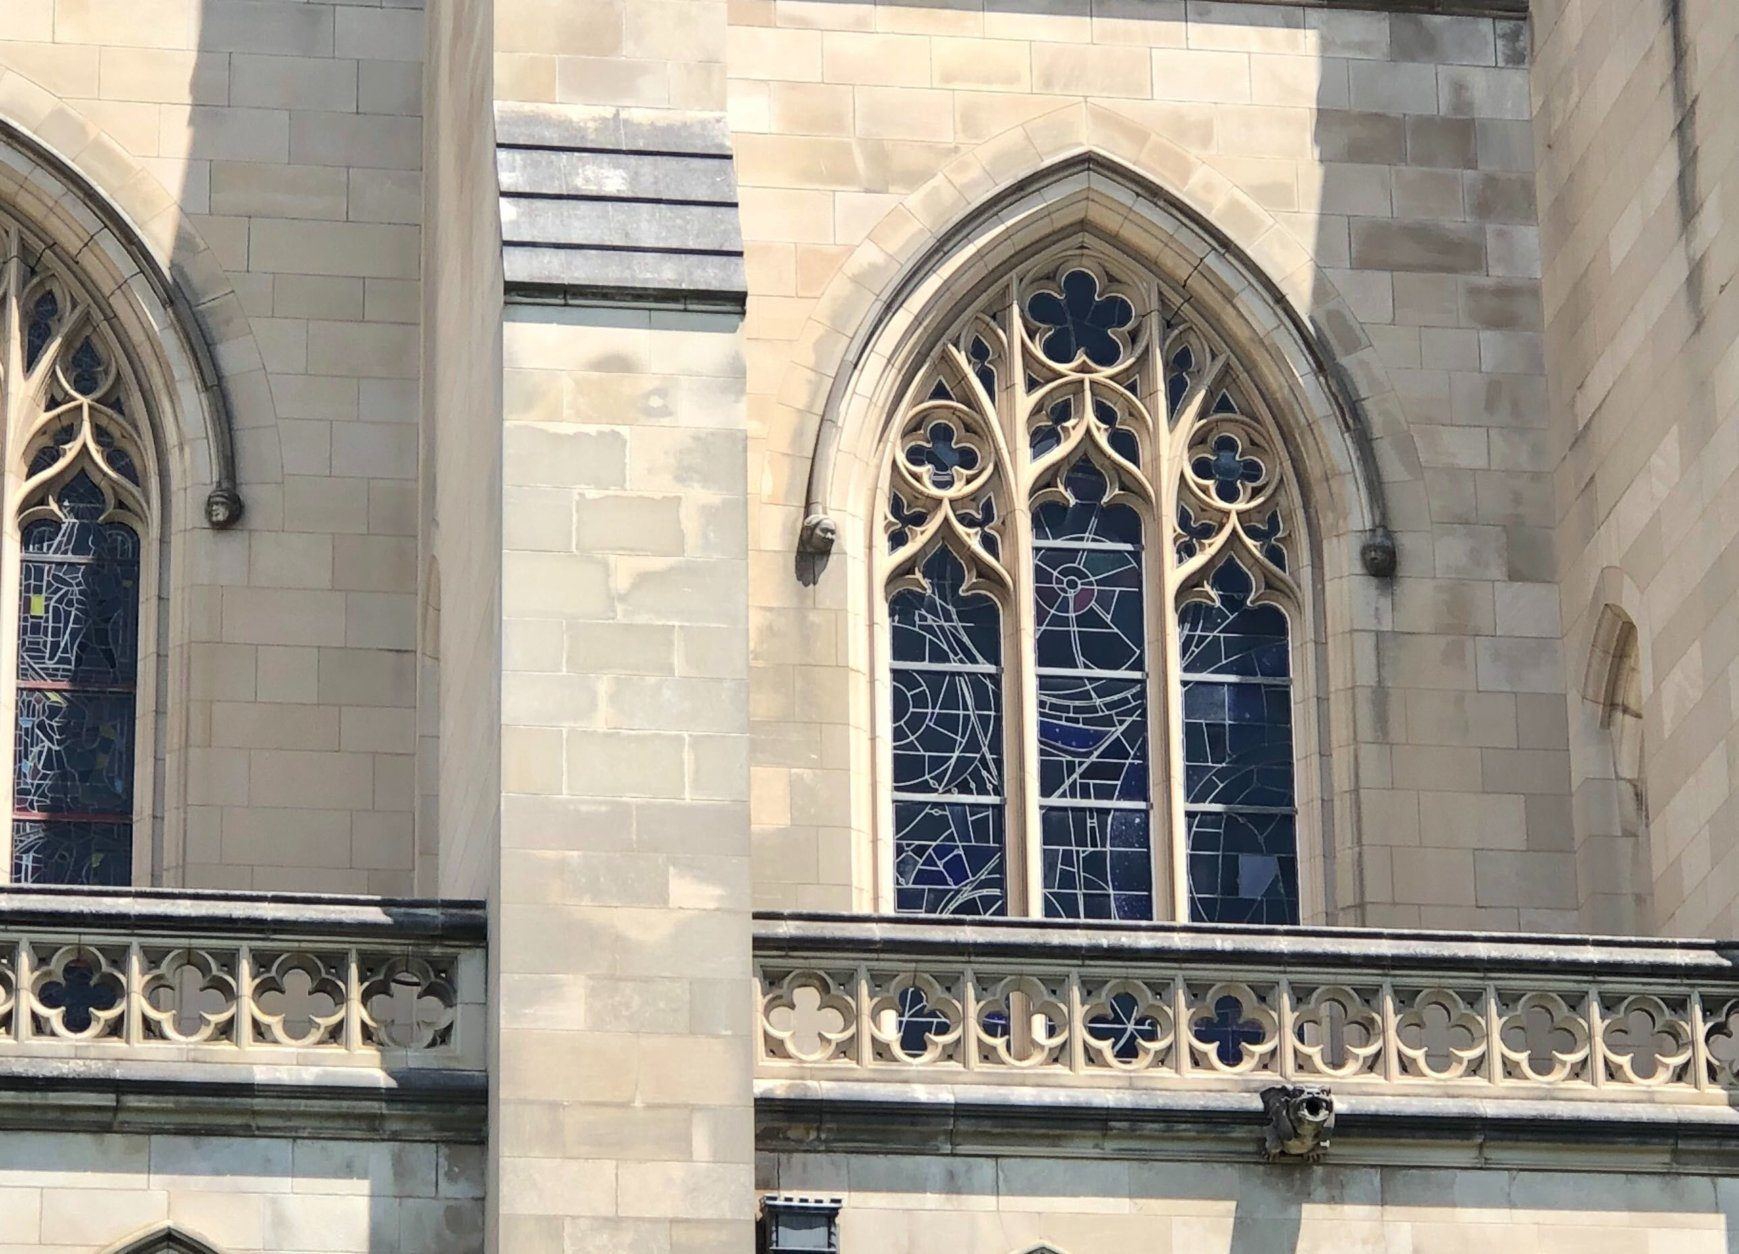 <p>There&#8217;s a fun fact related to the window you might not hear elsewhere: All the cathedral&#8217;s windows used to be plain panes of glass that were changed out with stained glass creations as themes and designs were selected.</p>